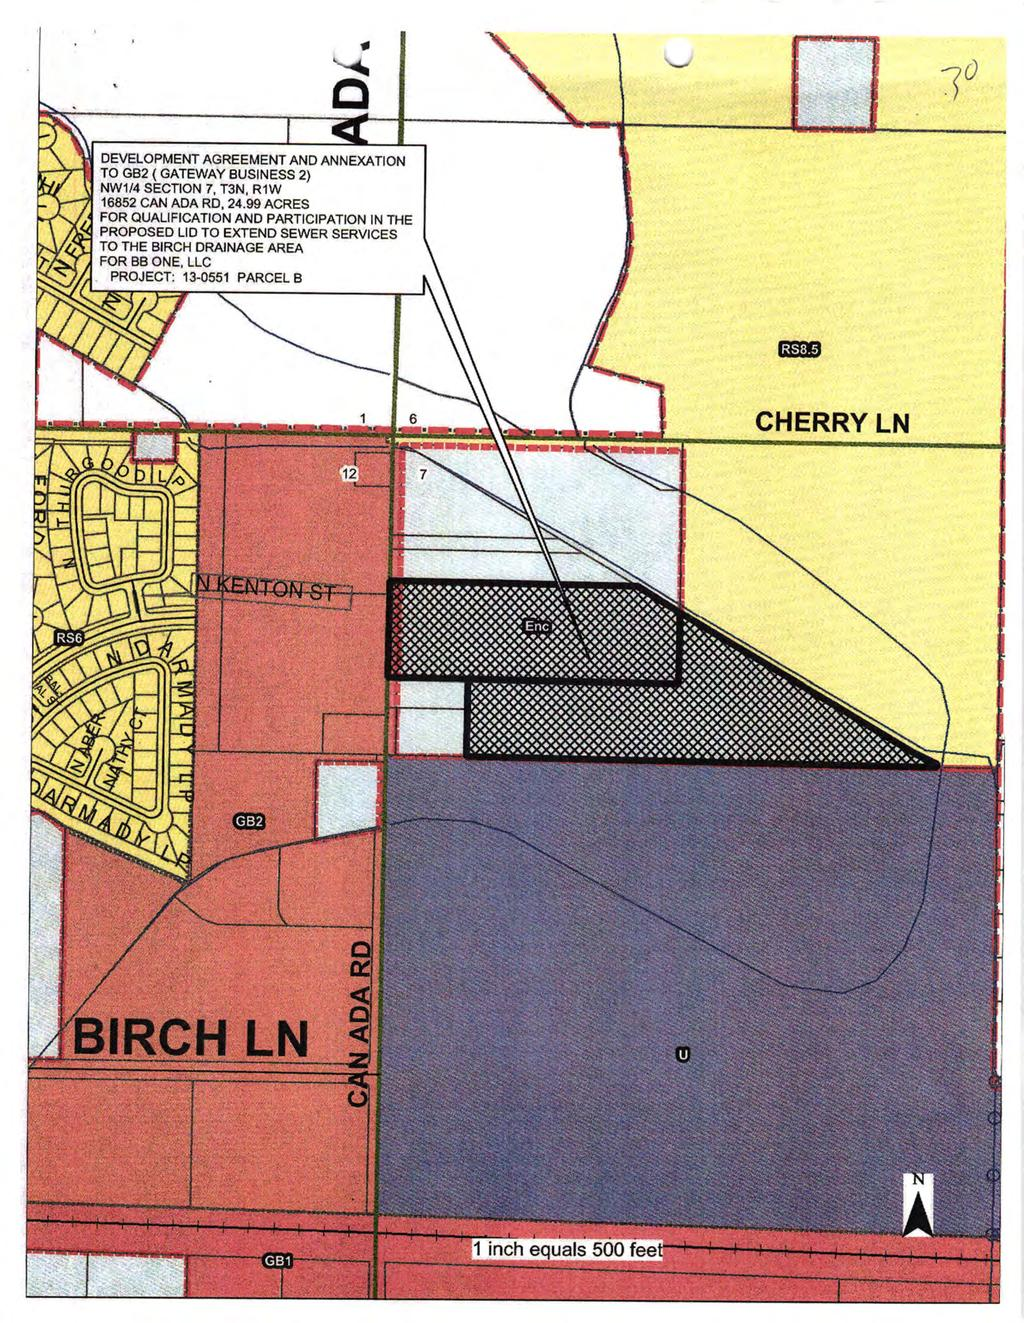 '{ 3 0 DEVELOPMENT AGREEMENT AND ANNEXATON TO GB2 ( GATEWAY BUSTNESS 2) NW1/4 SECON 7, T3N. R1W 16852 CAN ADA RD, 24.